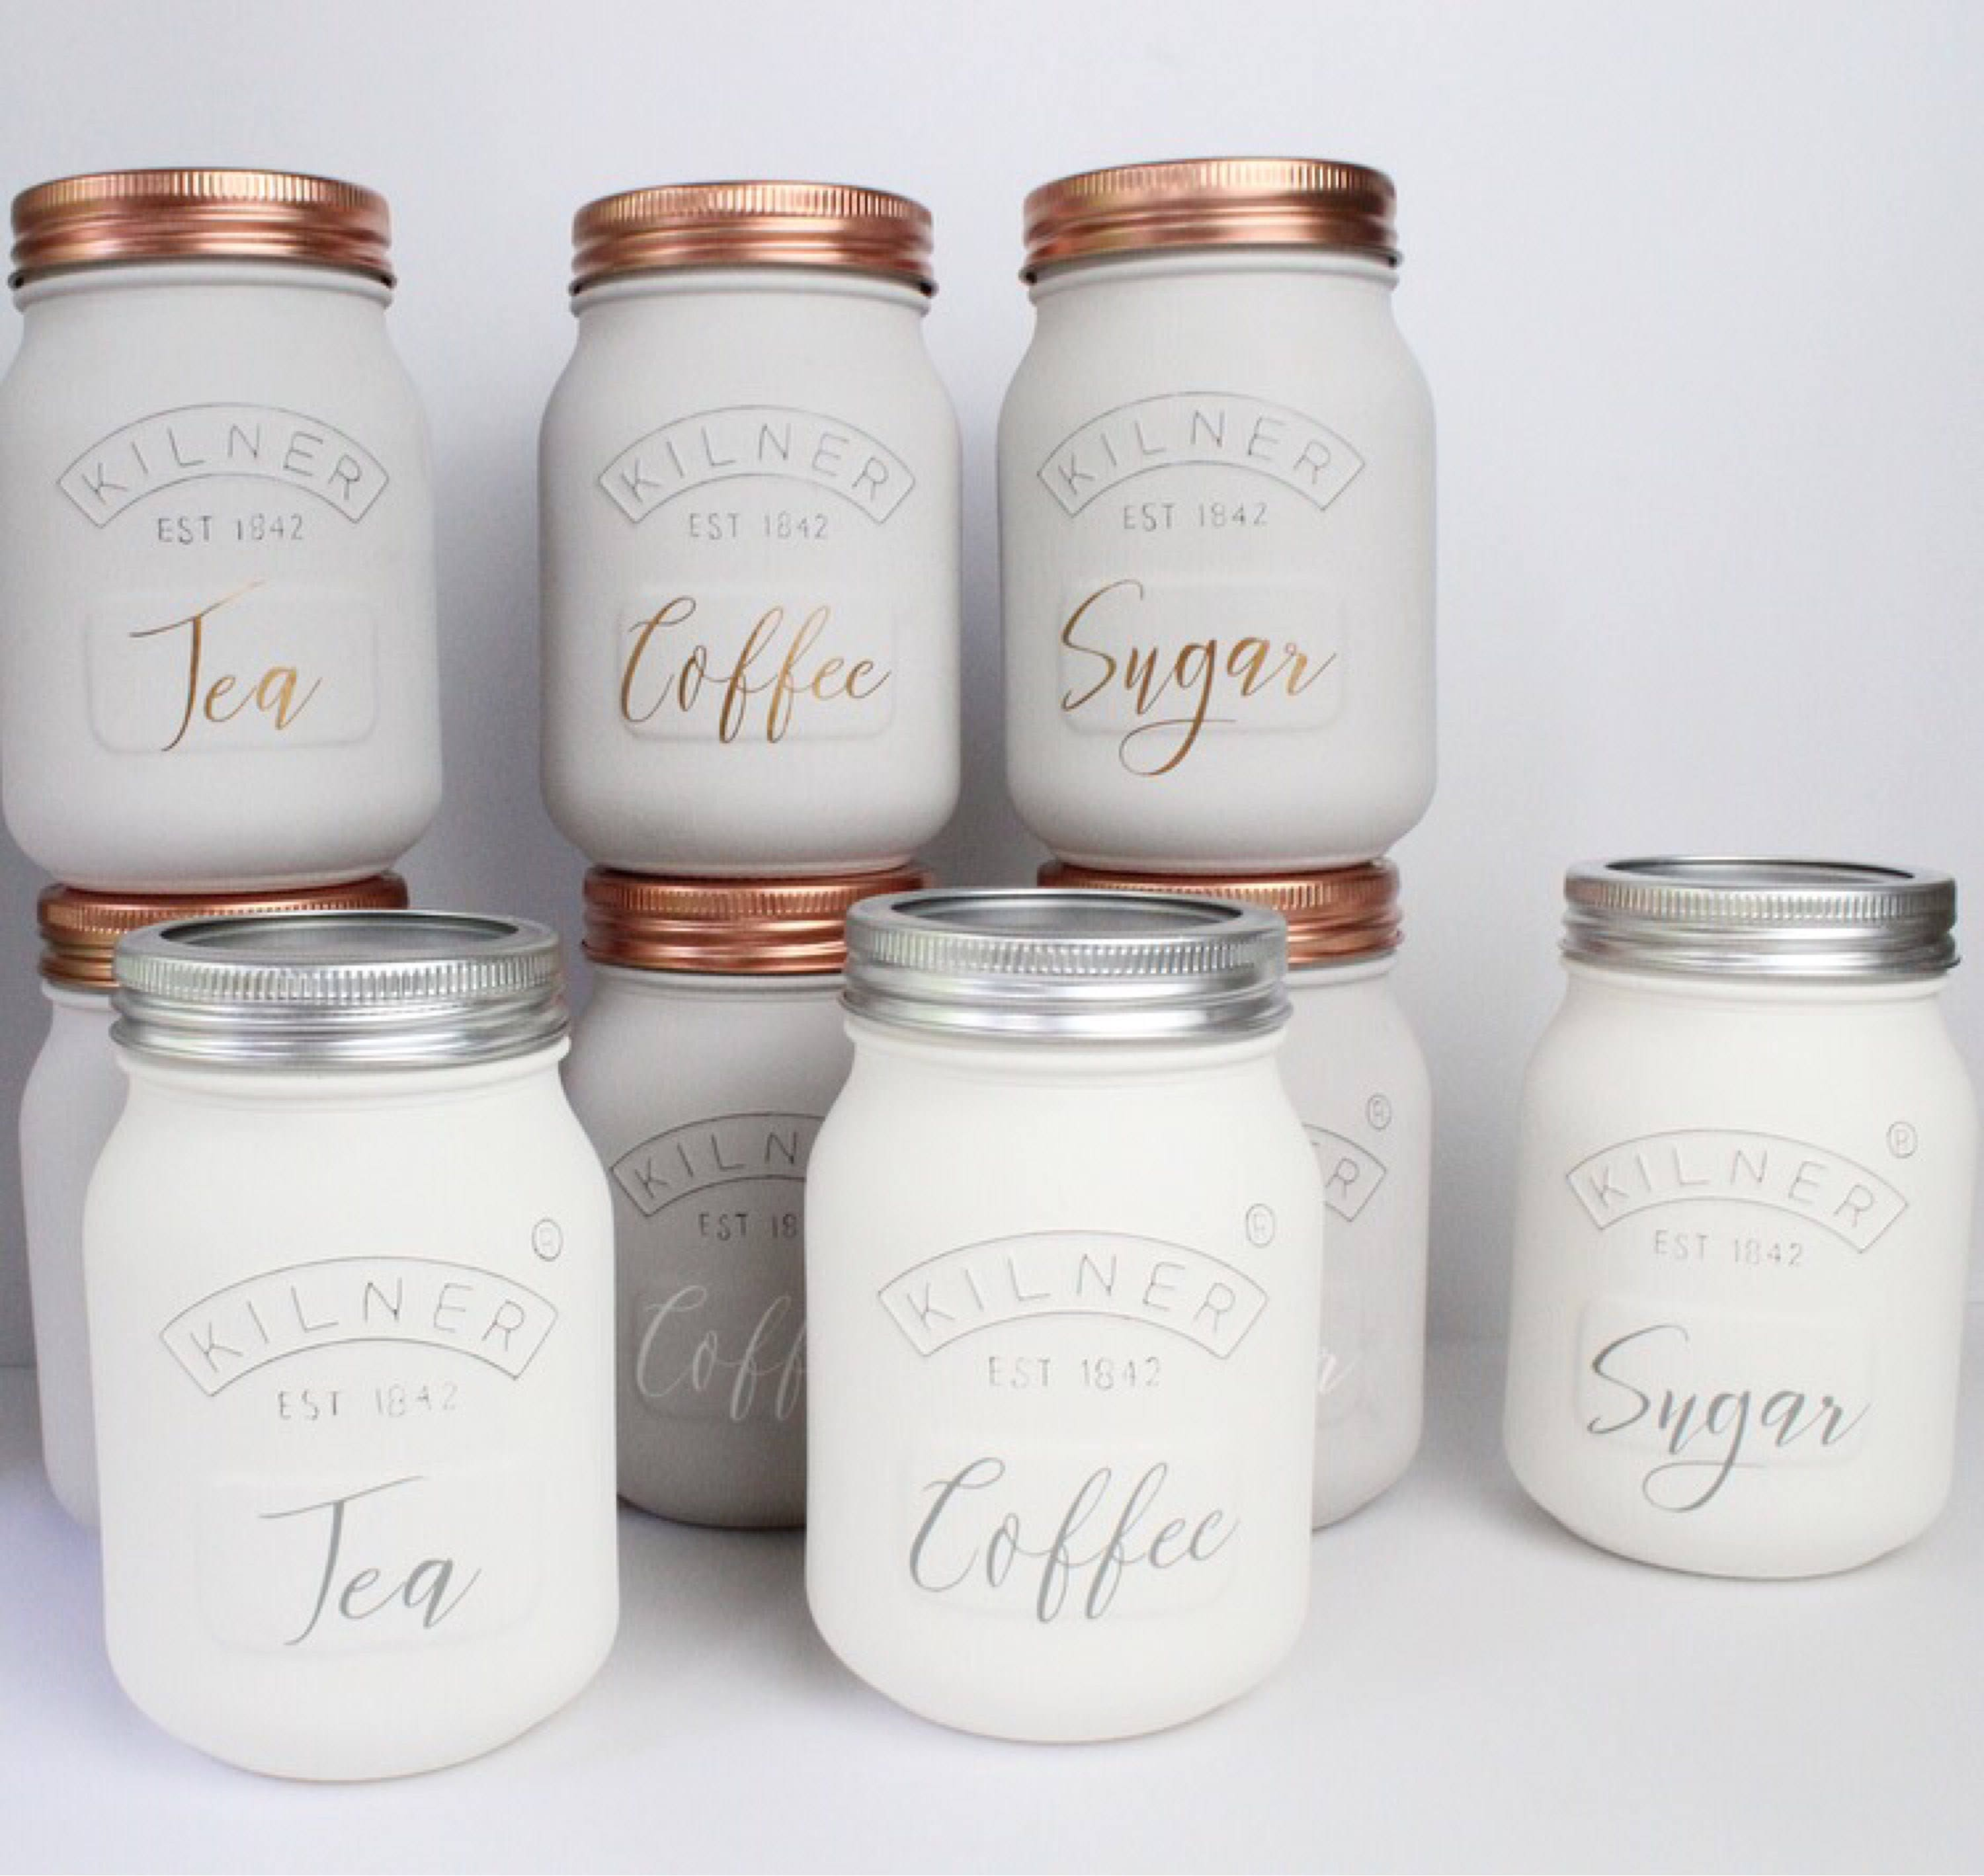 White Kitchen Sets: White Kitchen Set Of 3 Coffee Sugar And Tea Canisters